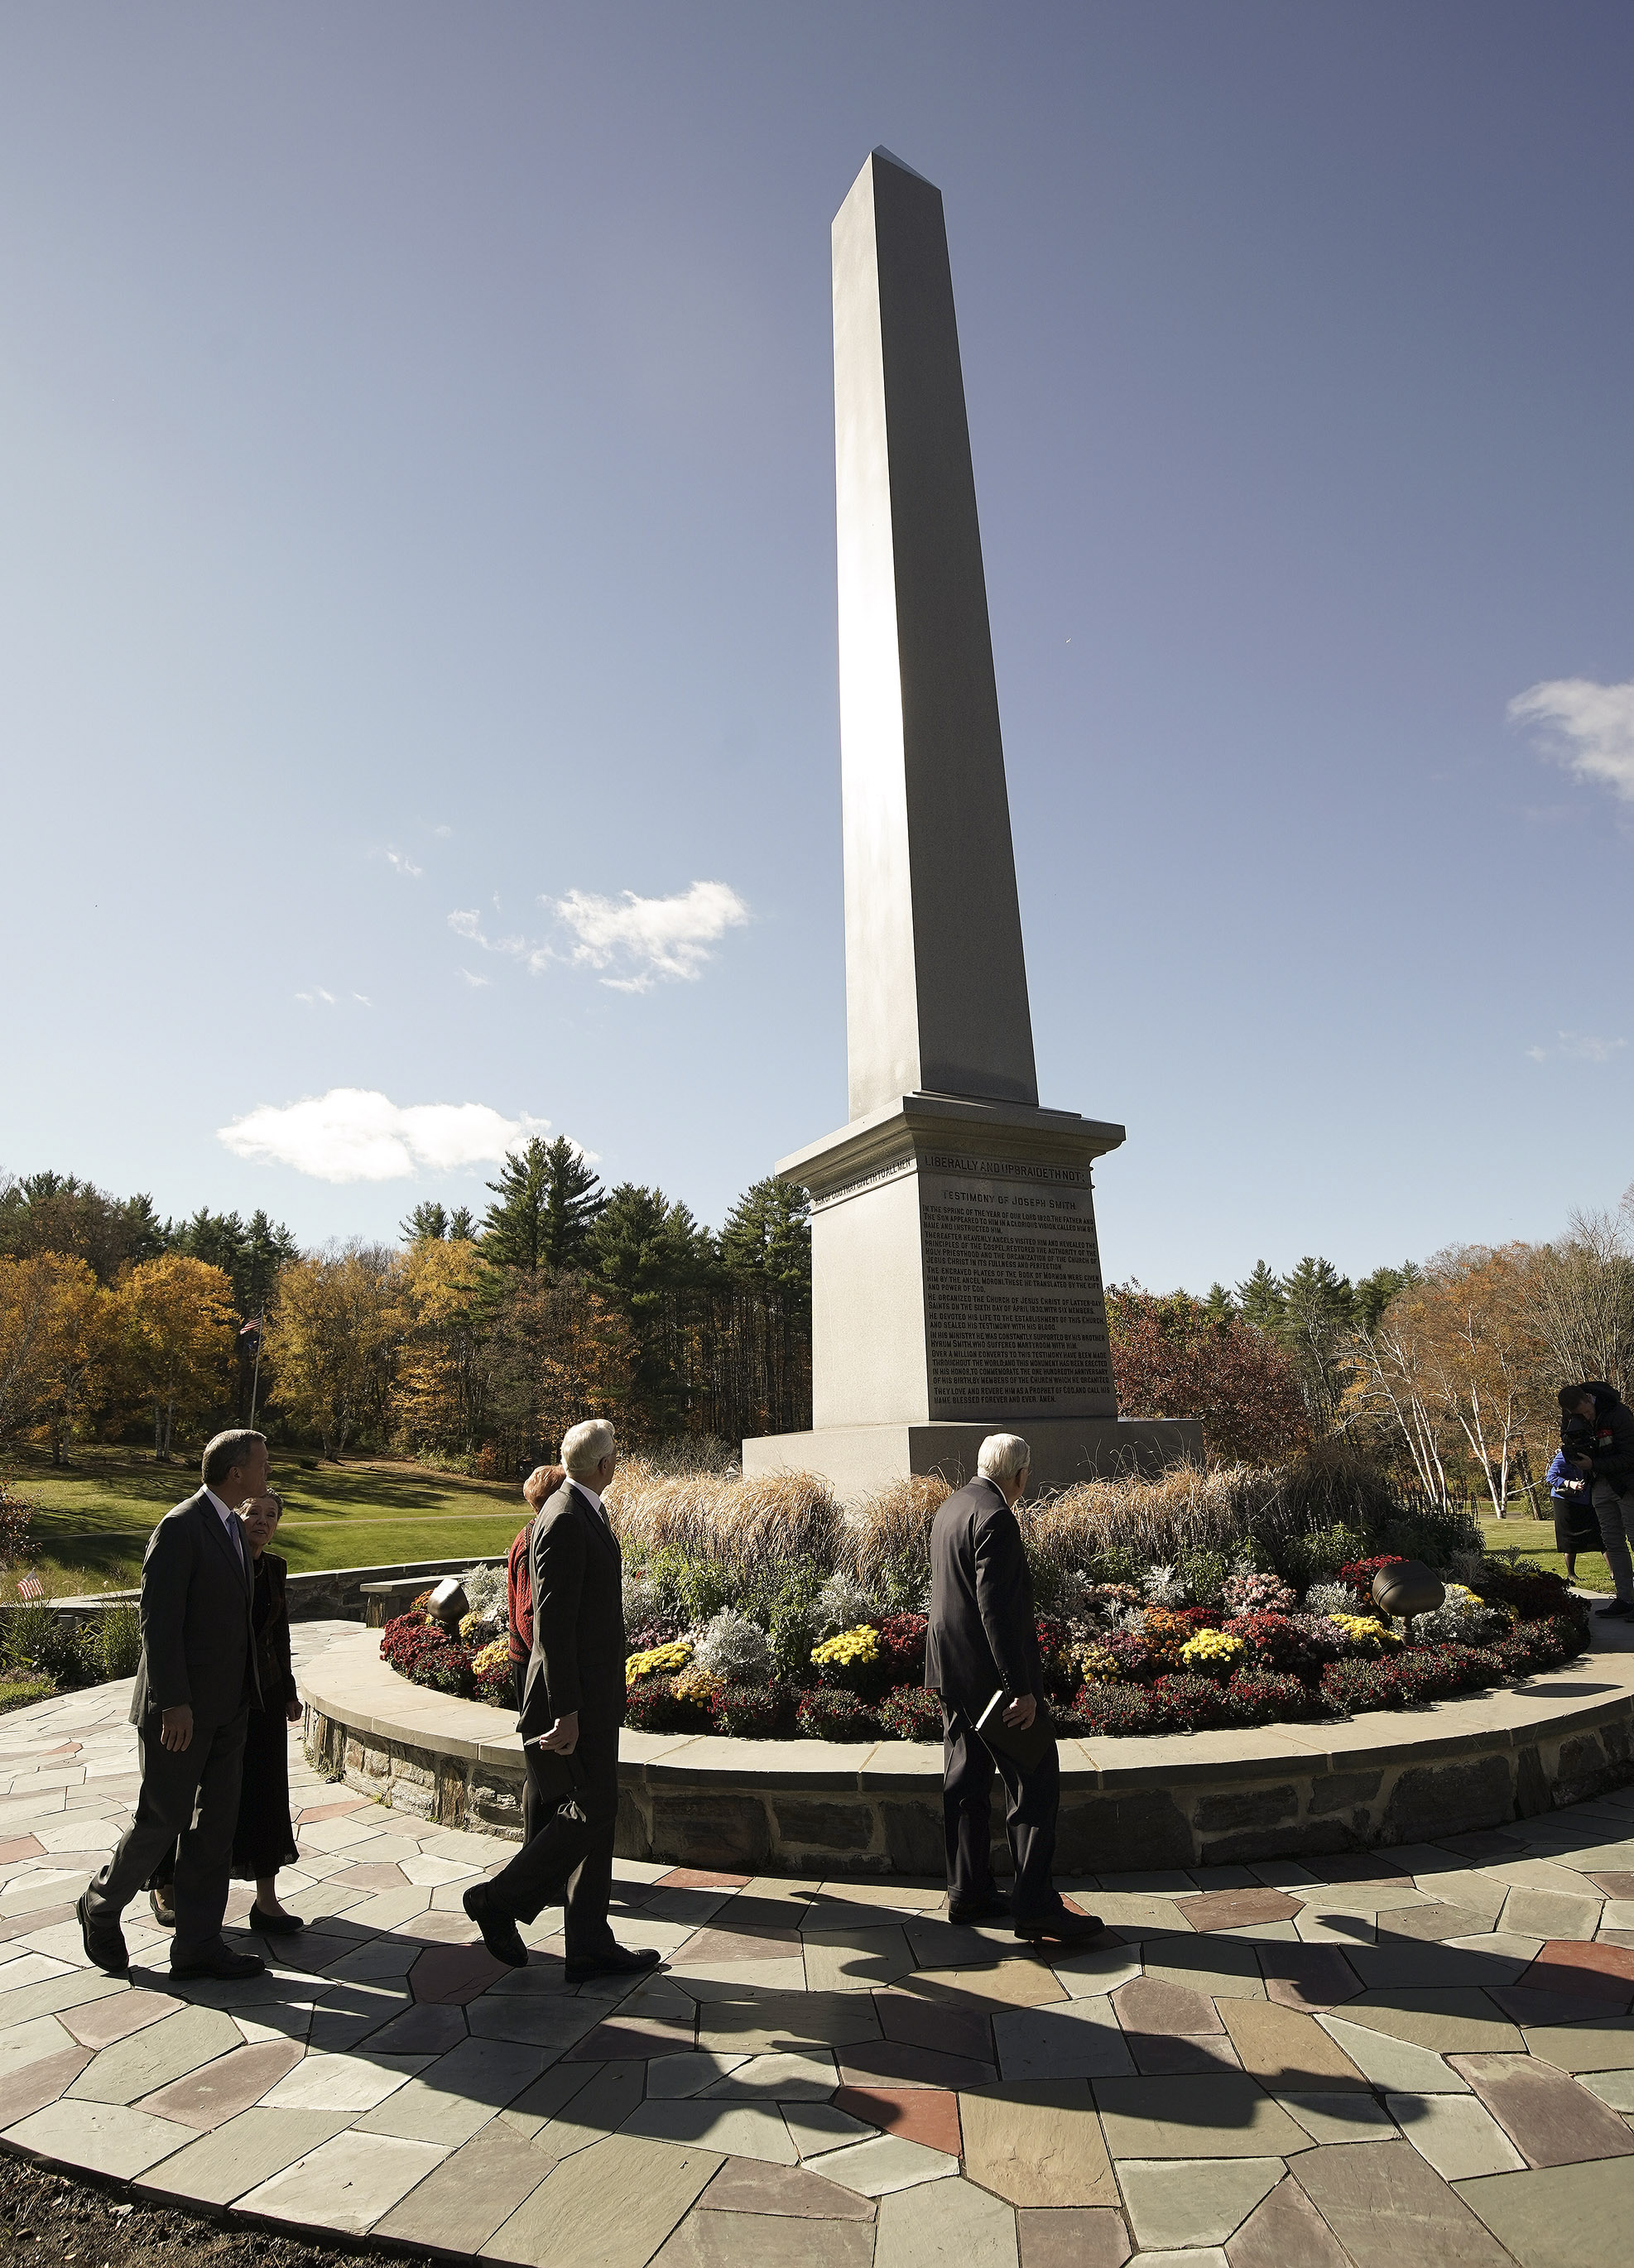 Elder Randall Bennett, Elder D. Todd Christofferson of The Church of Jesus Christ of Latter-day Saints' Quorum of the Twelve Apostles, and President M. Russell Ballard, acting president of the Quorum of the Twelve Apostles, walk around the Joseph Smith Birthplace Memorial in Sharon, Vt., on Saturday, Oct. 19, 2019.